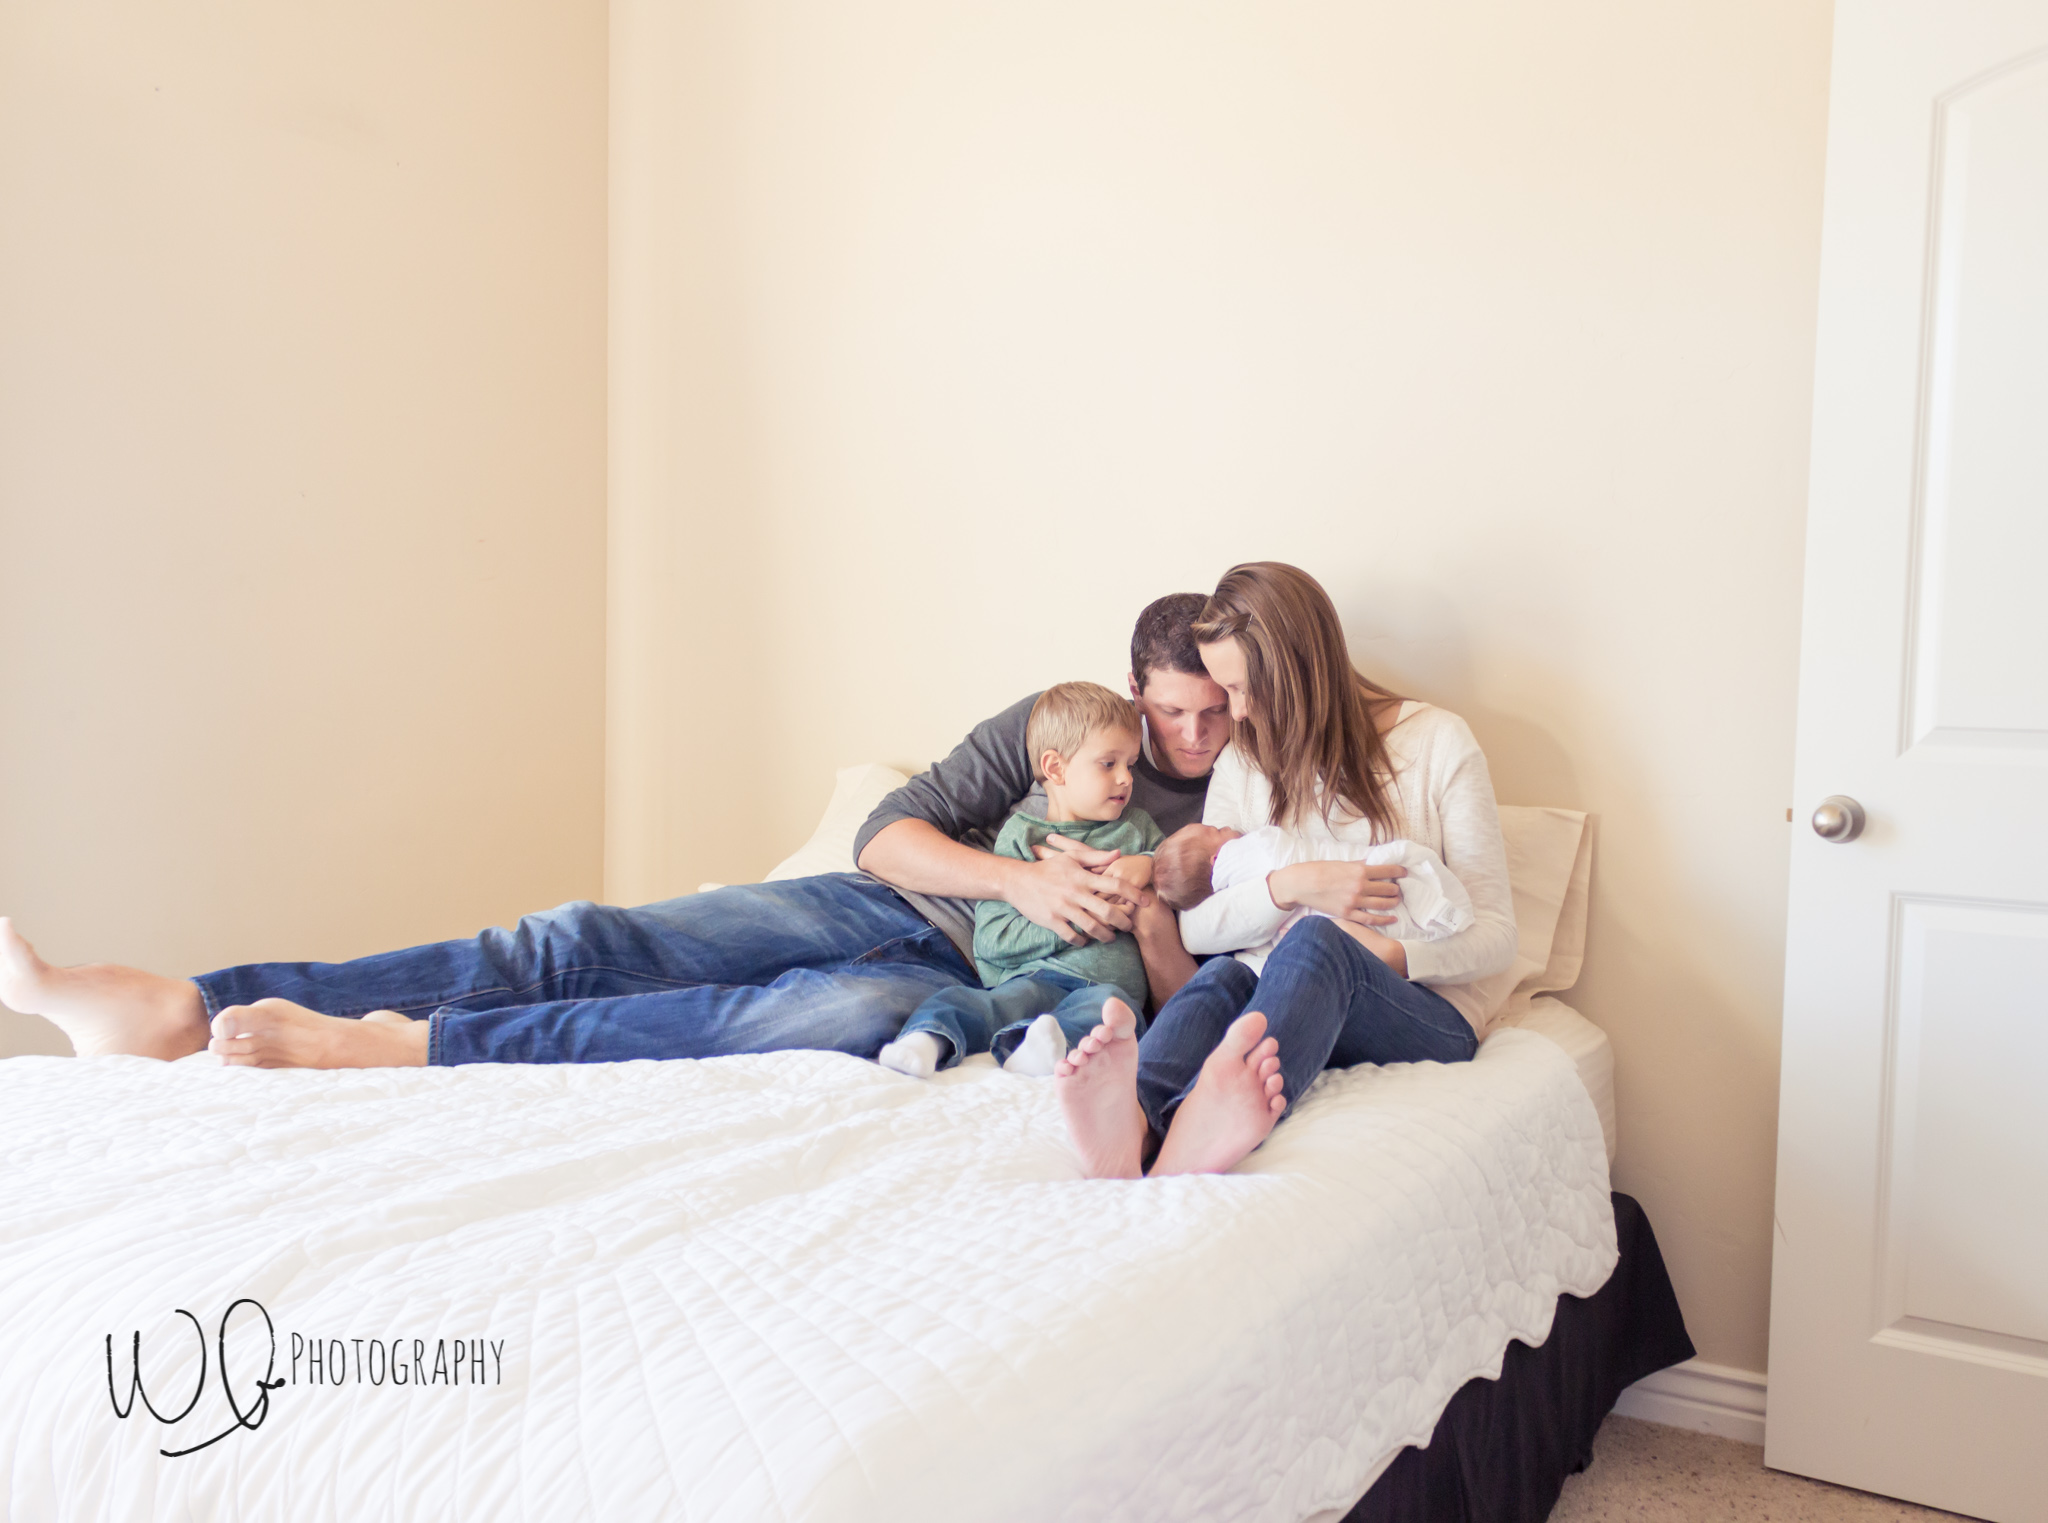 Lifestyle newborn pictures, Utah County